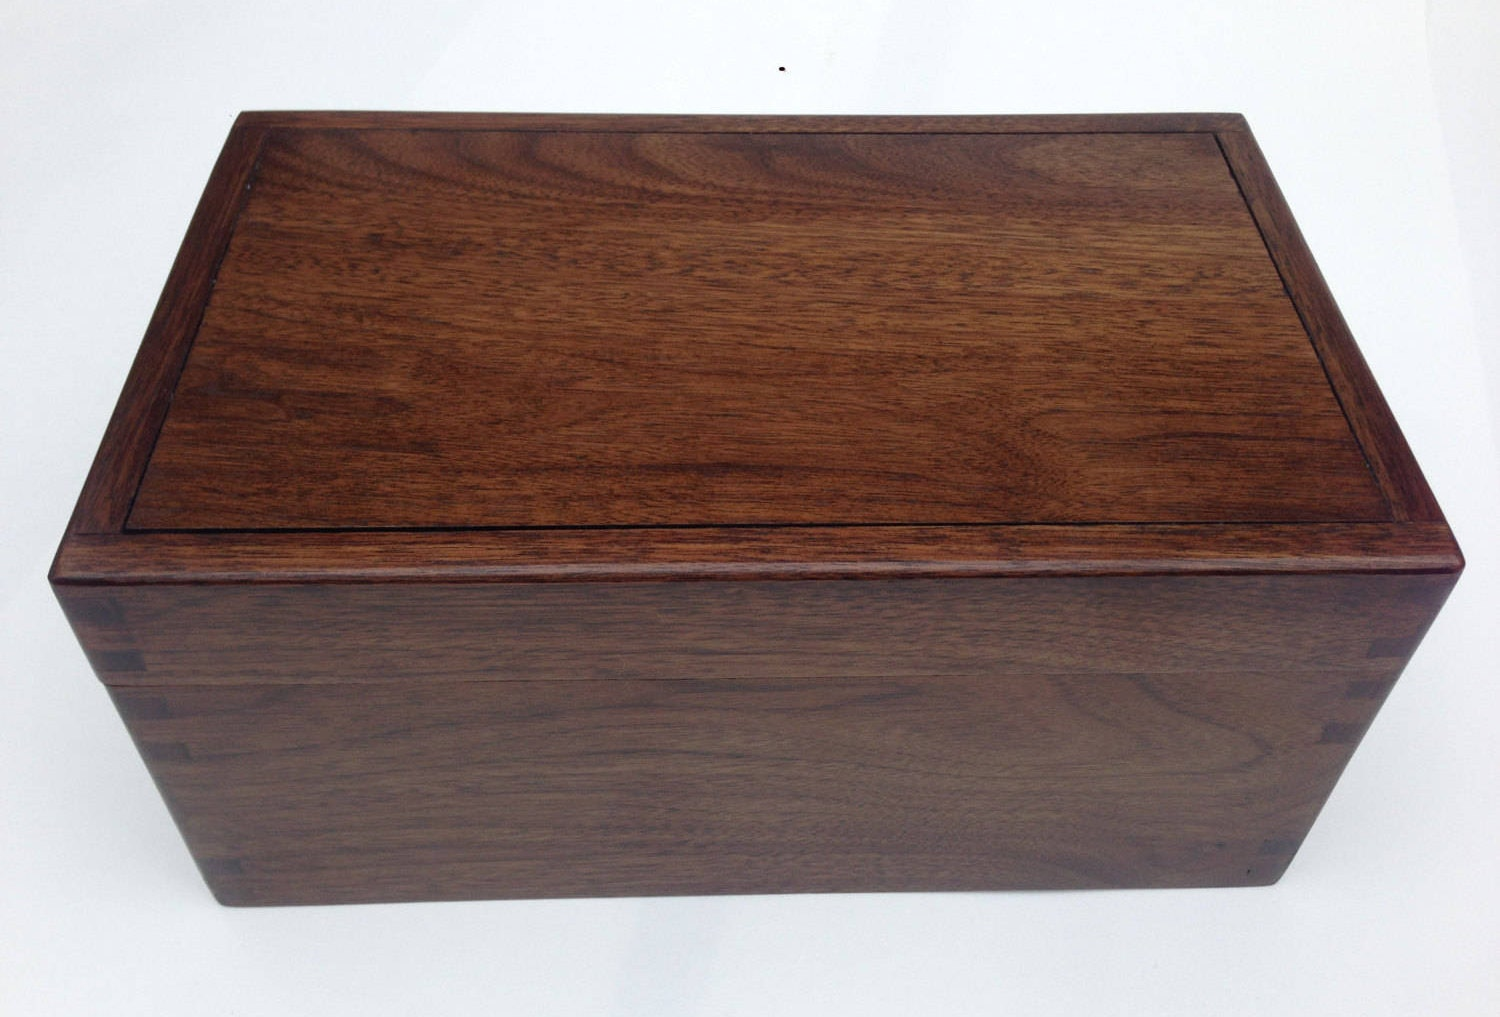 Digby fine wooden box handmade in walnut contemporary design. Spectacular valet or jewellery box can be customised in wood and interior.